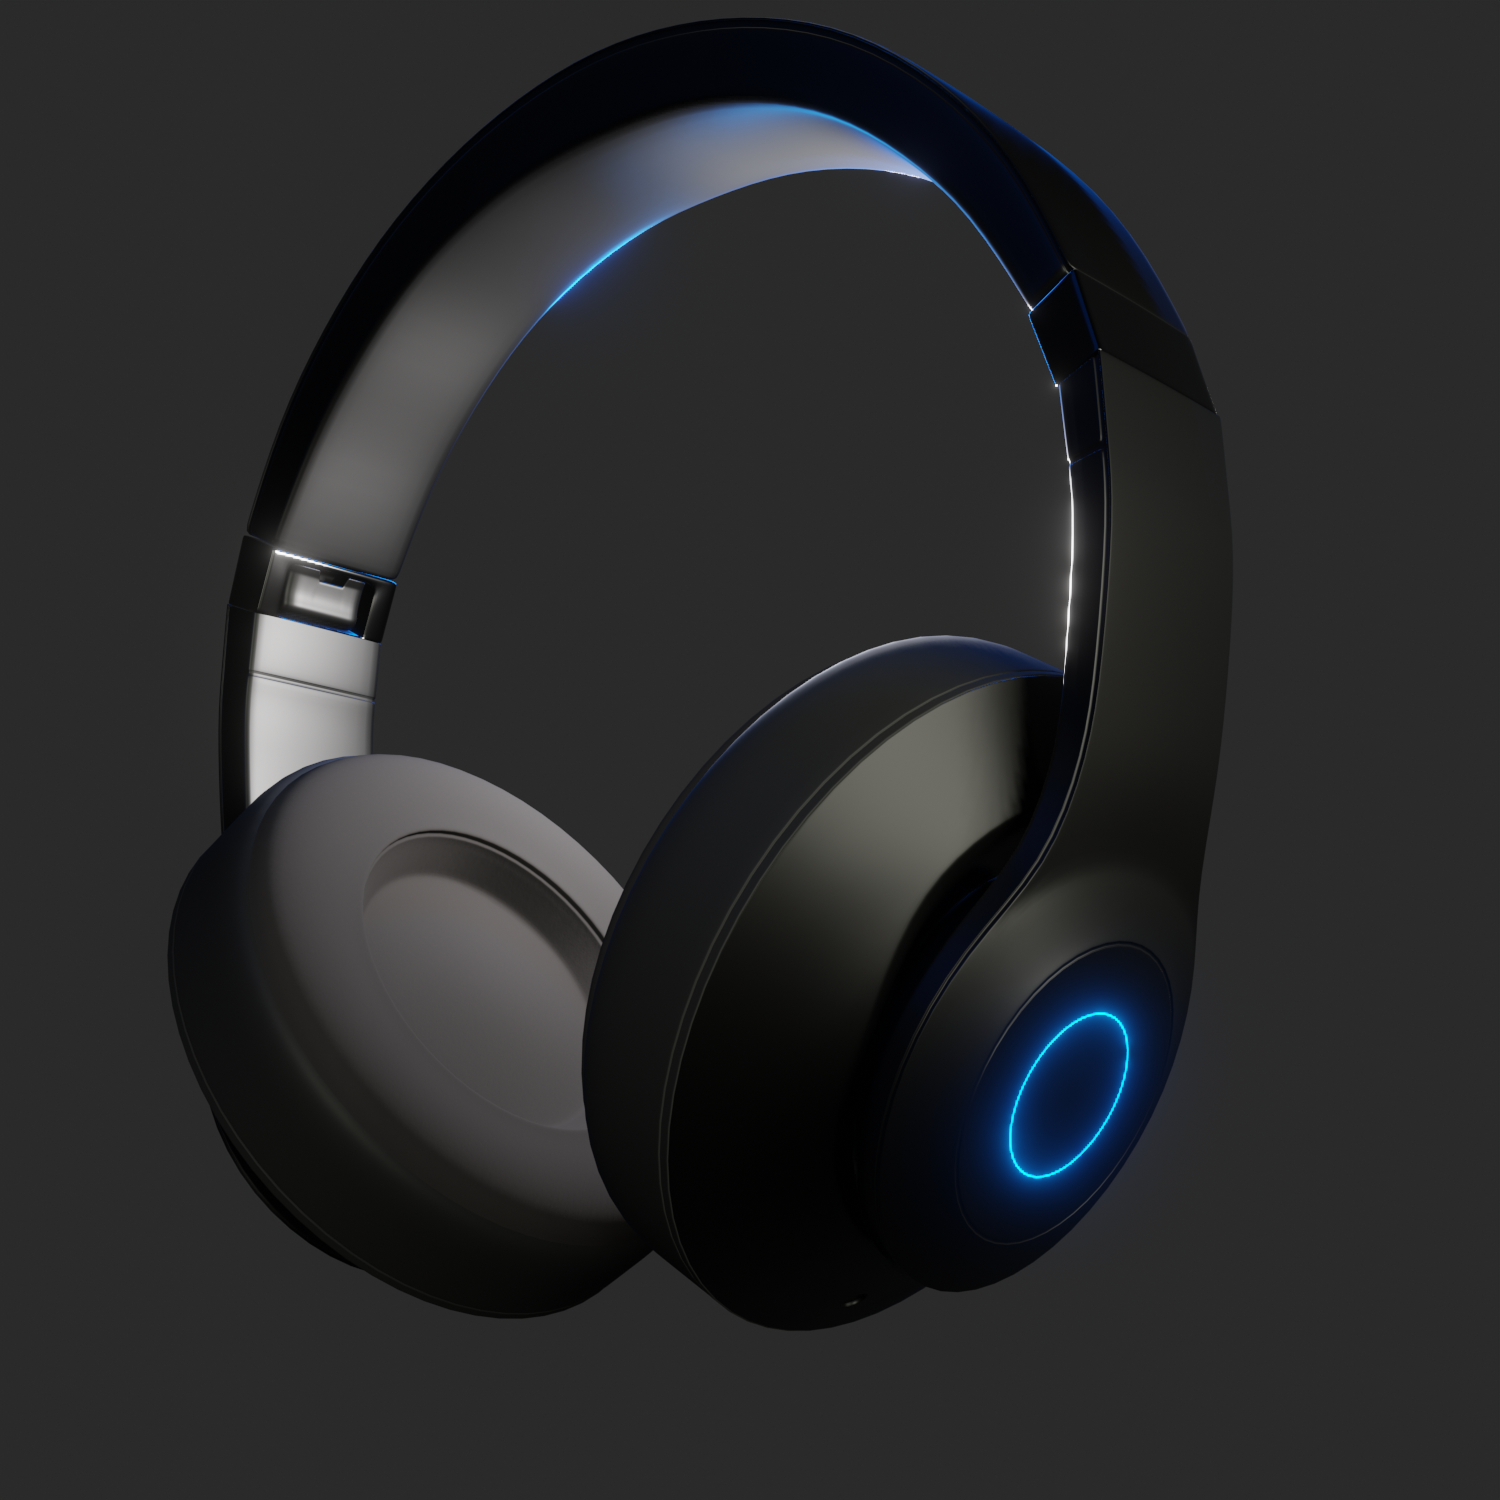 Headset preview image 1